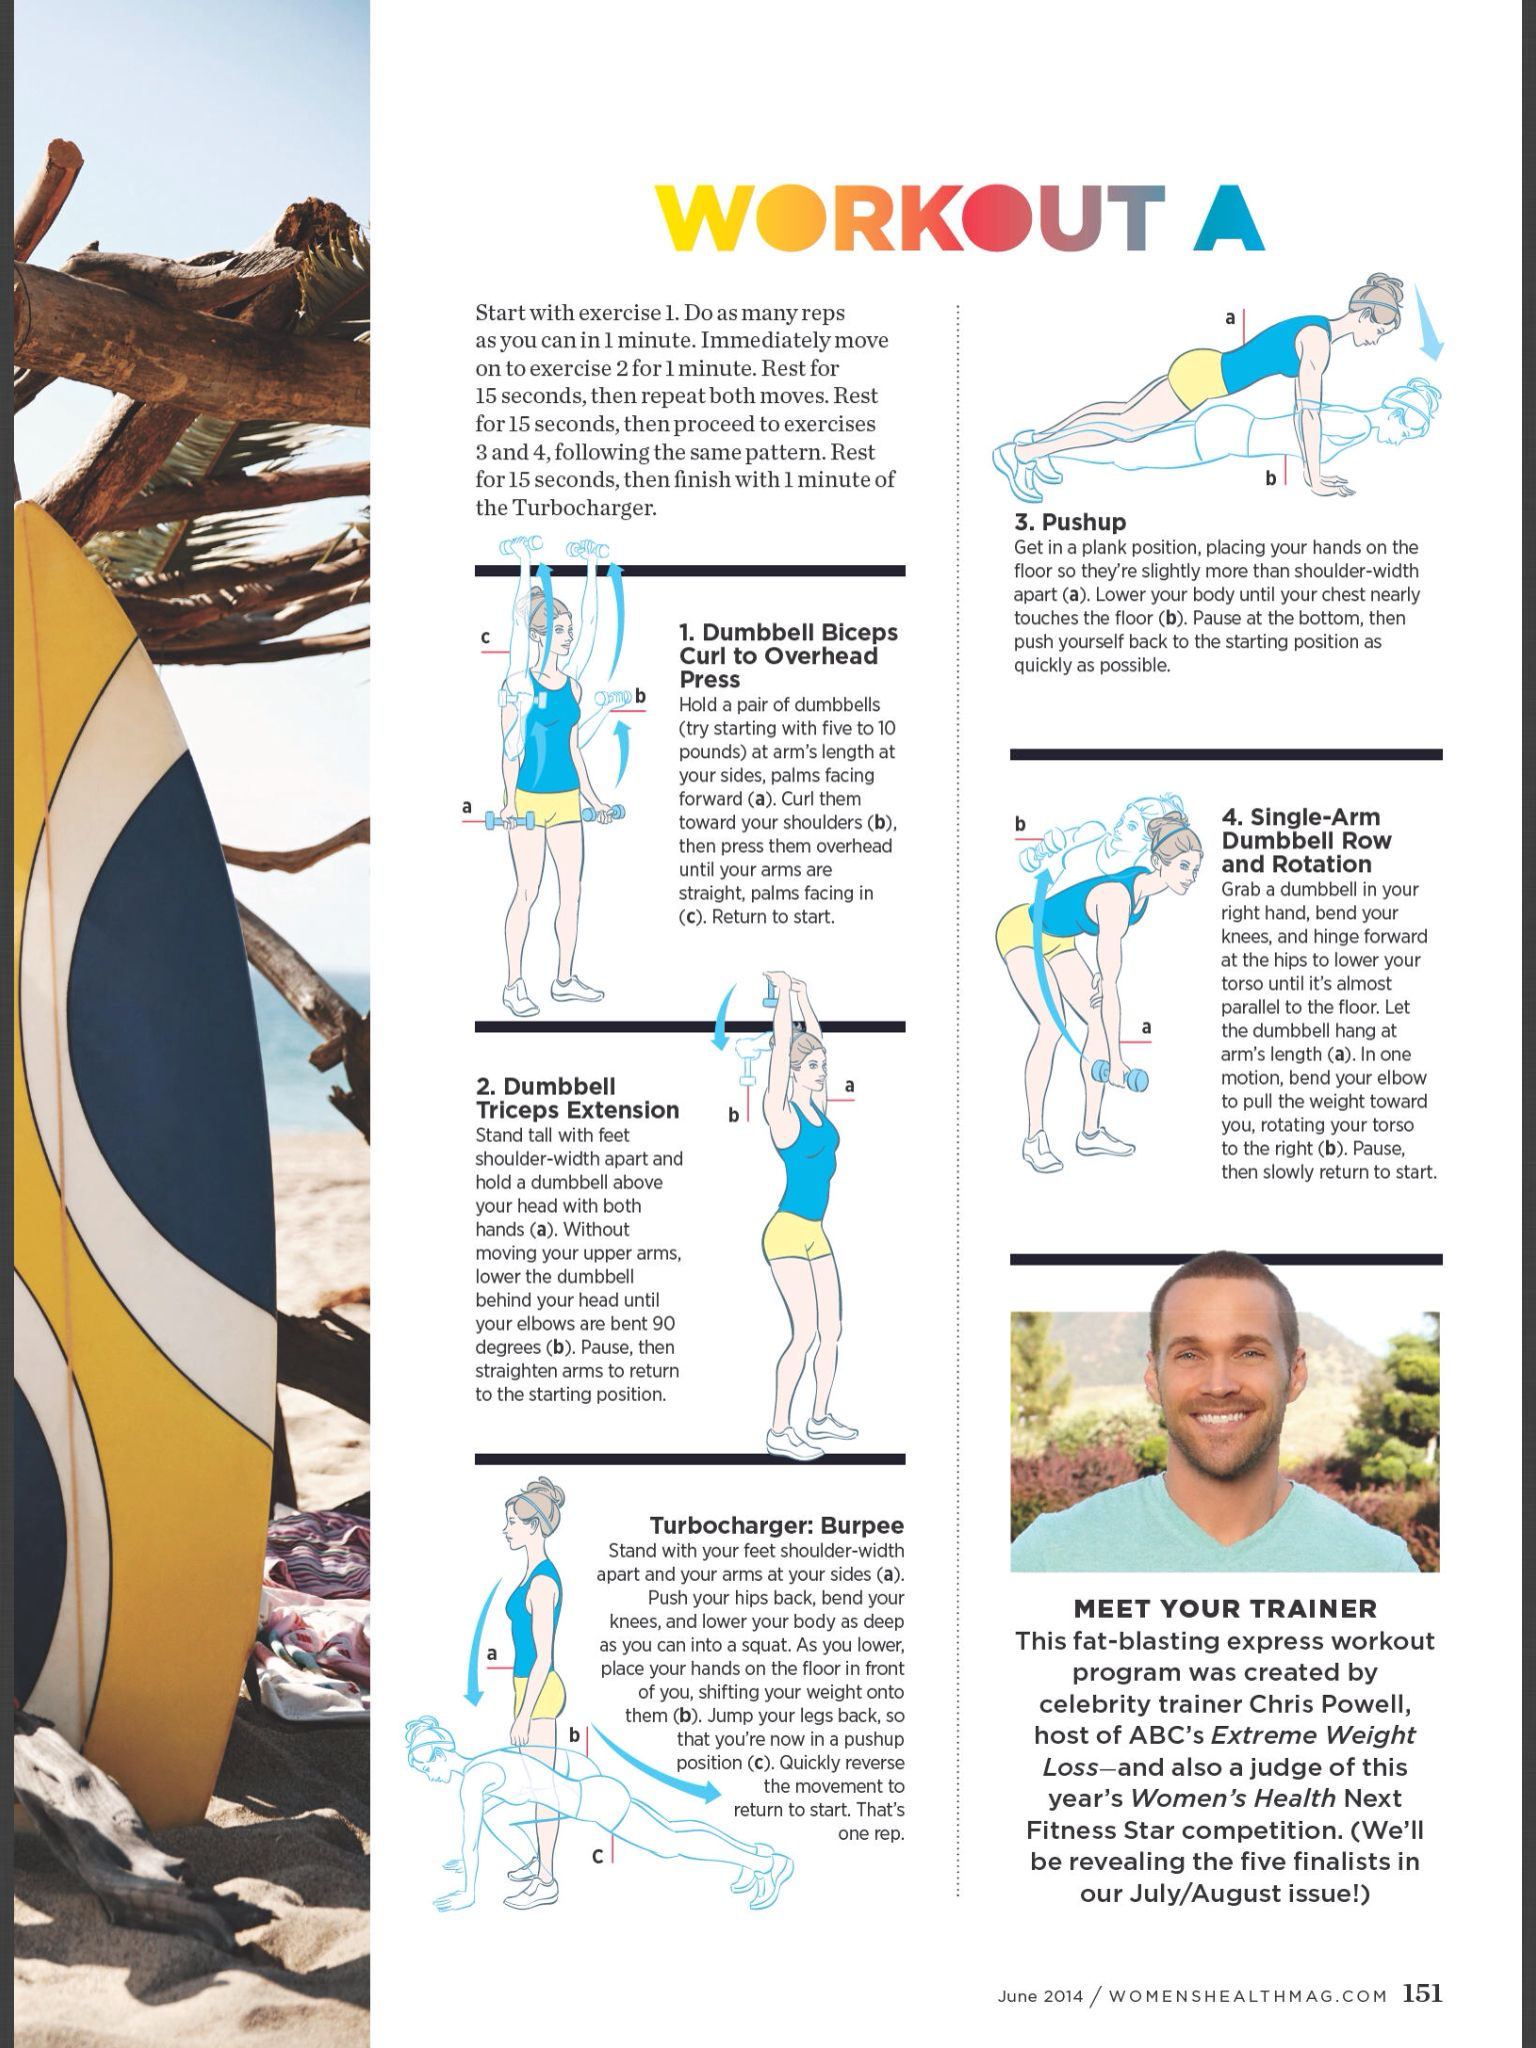 Beach body workout A from Chris Powell in June Women's